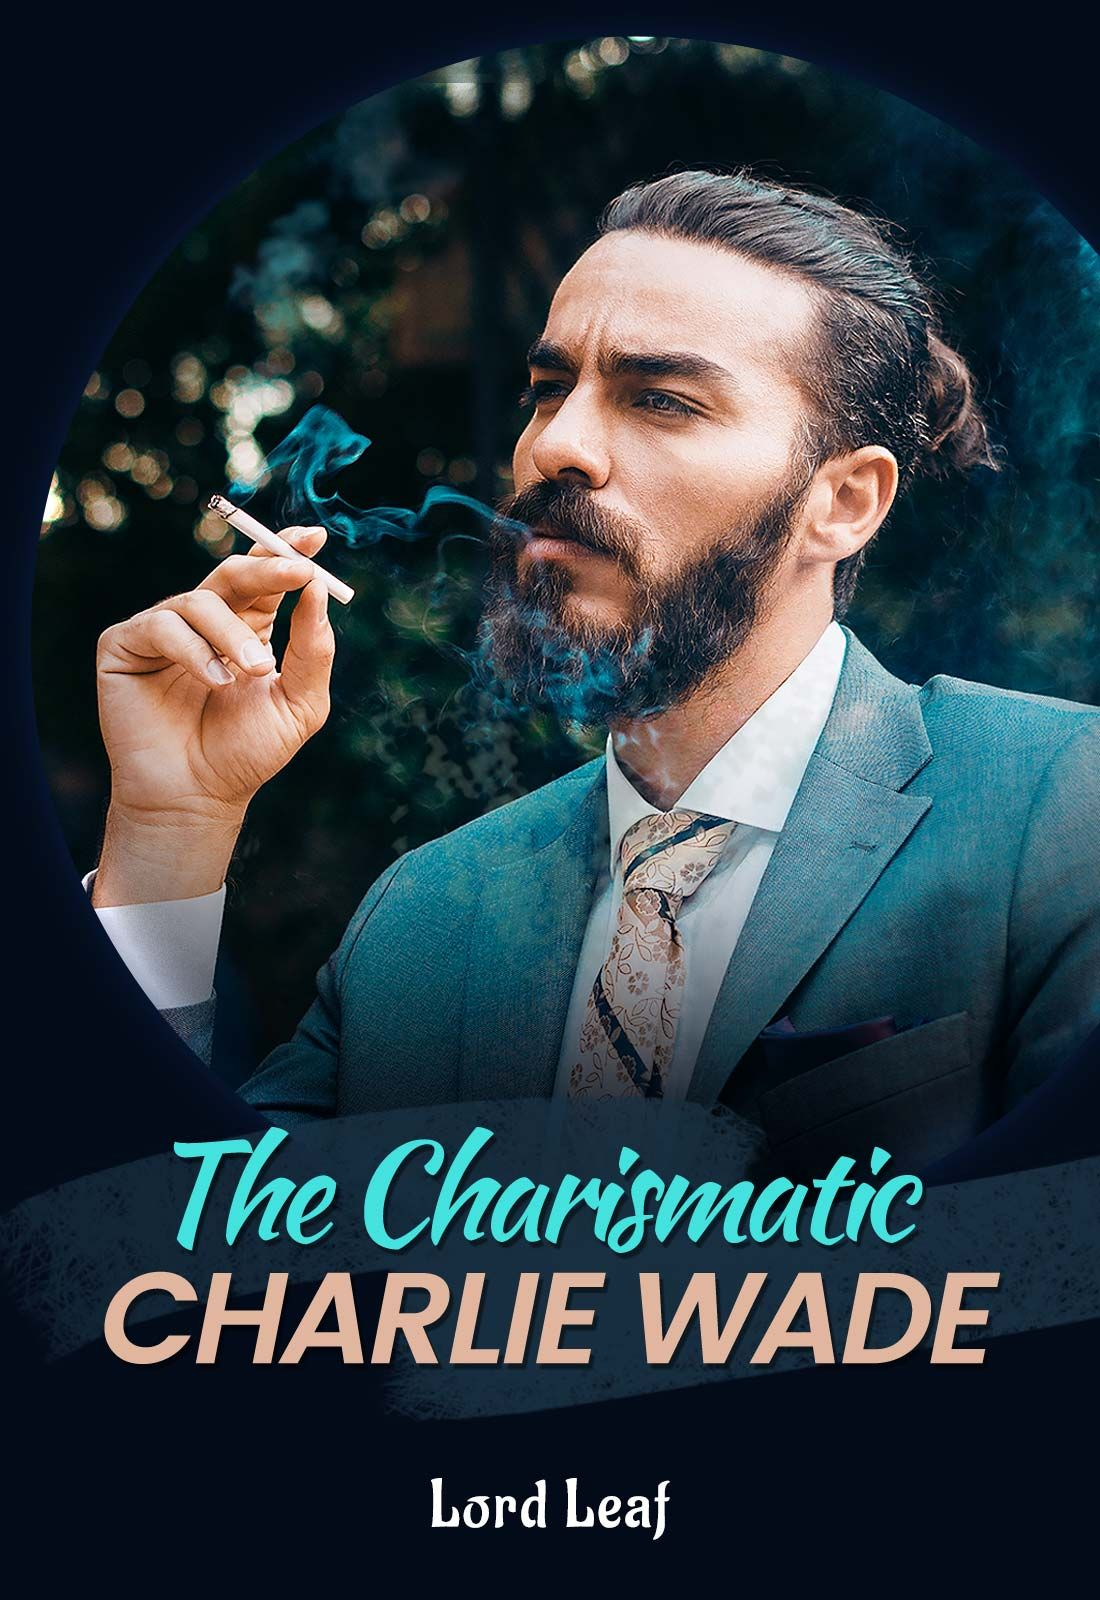 The Charismatic Charlie Wade by Chally Yana in 2021   Good novels to read,  Novels to read online, Novels to read